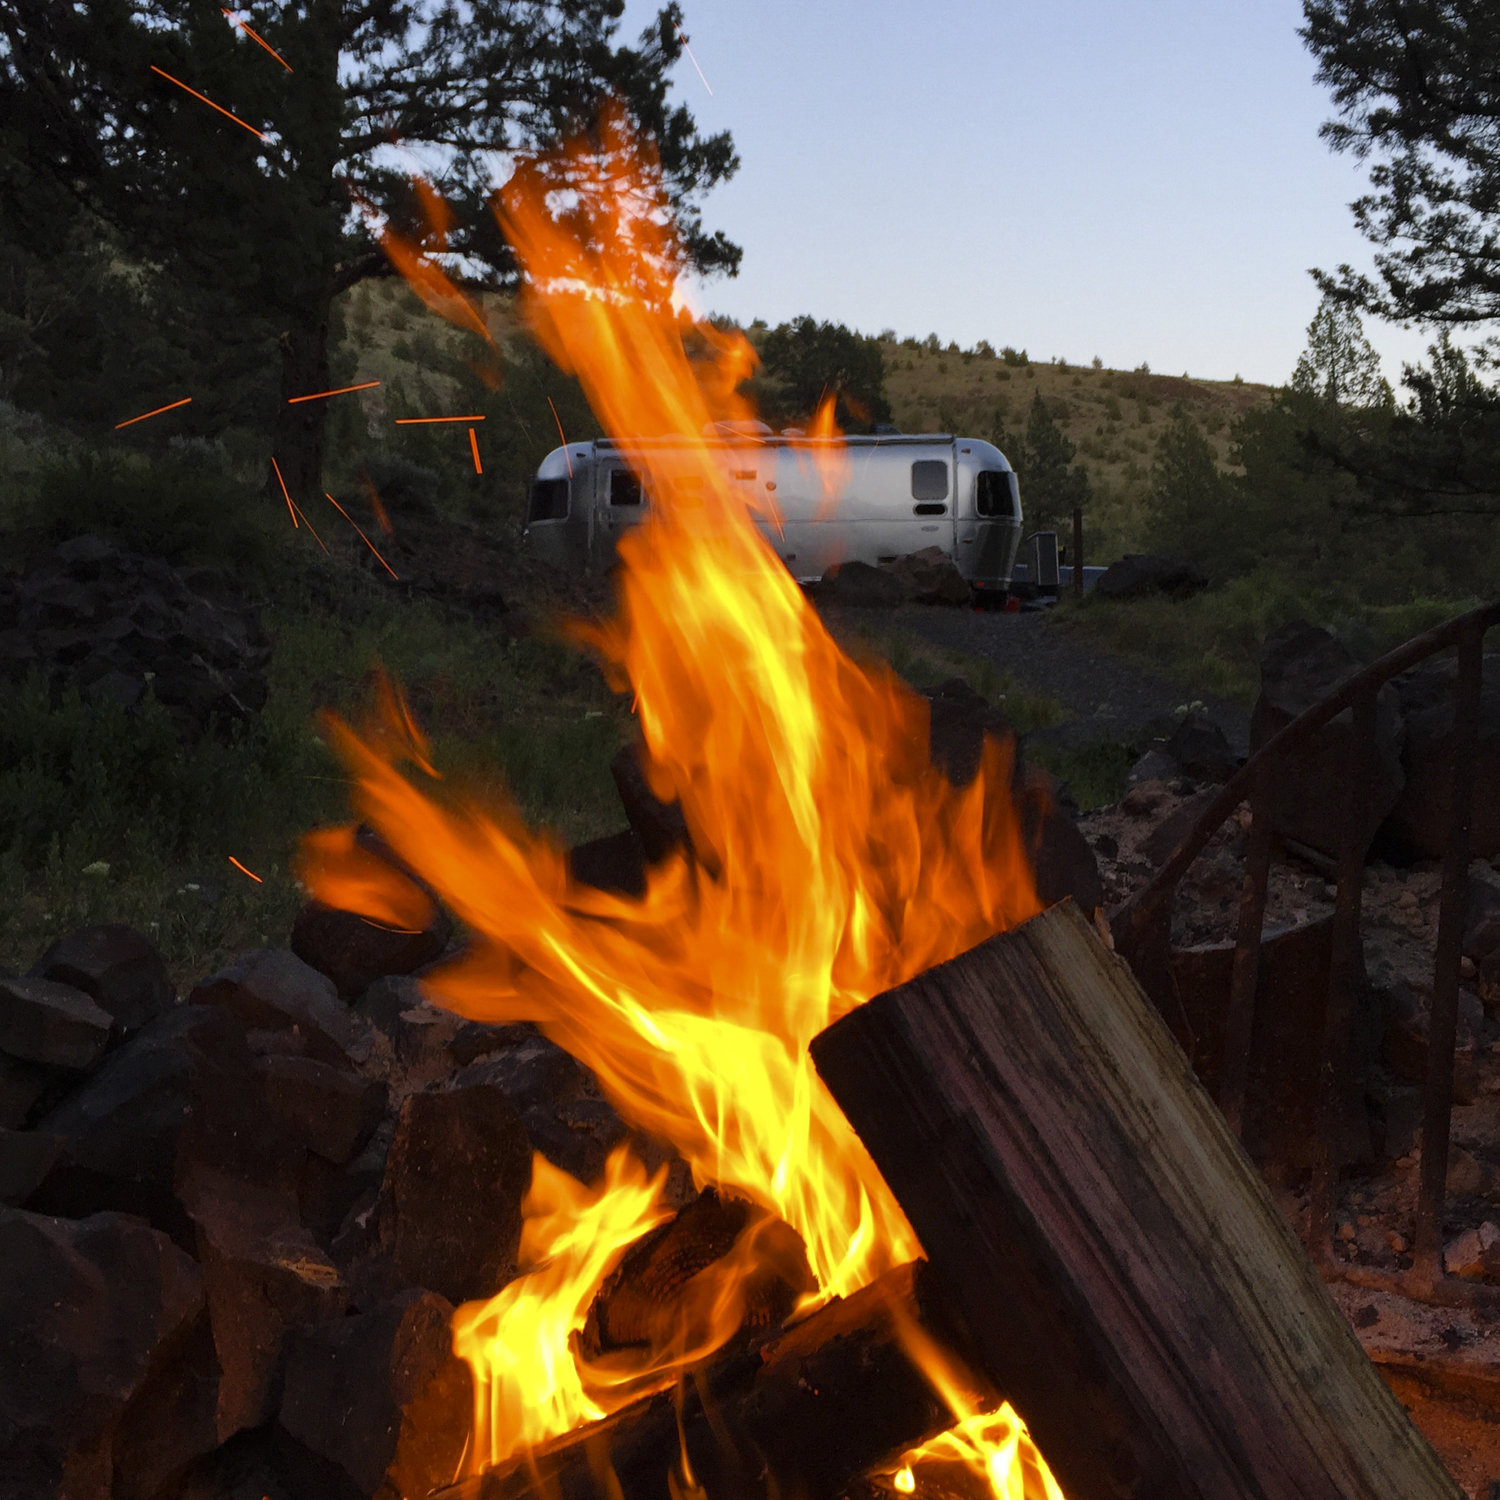 Campfires and Airstreams - two of our favorite things